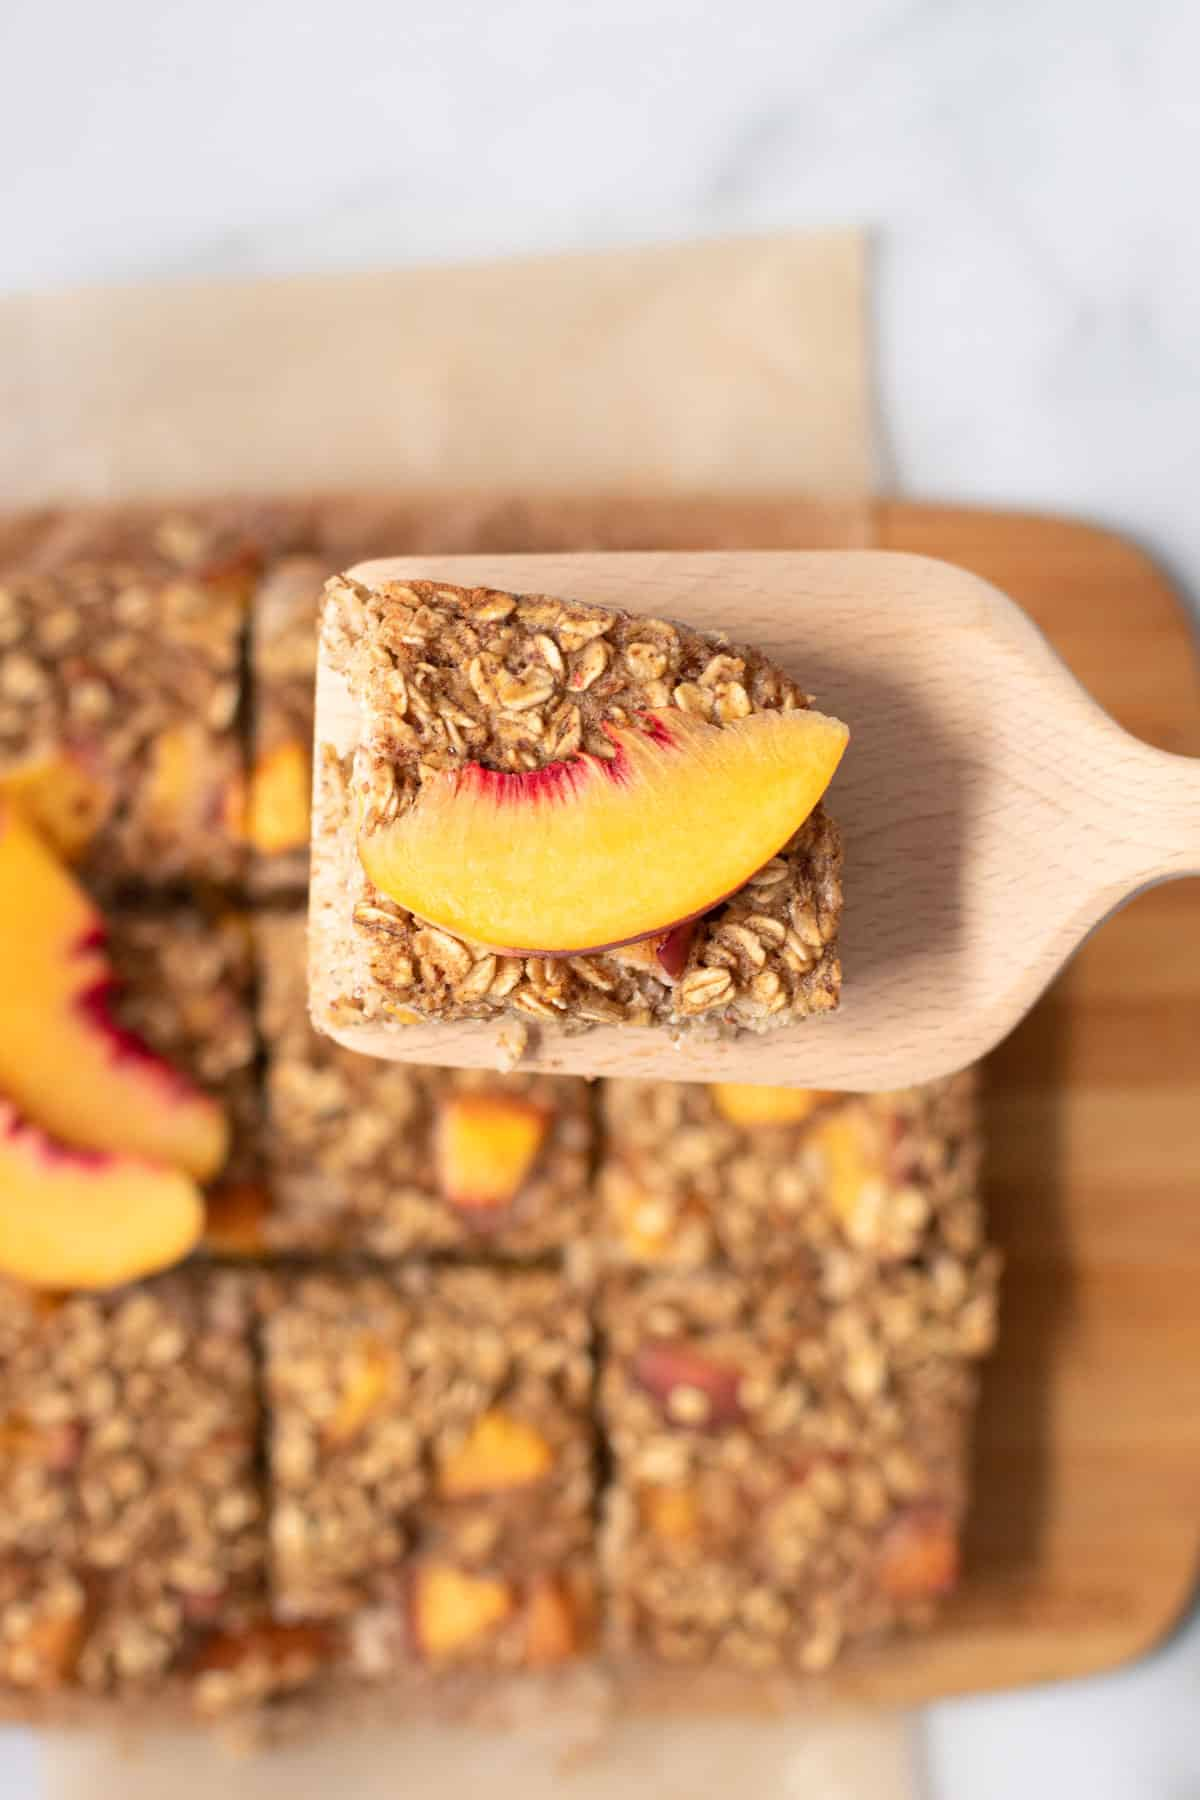 A slice of peaches and cream oatmeal on a wooden spatula with a fresh peach on it.